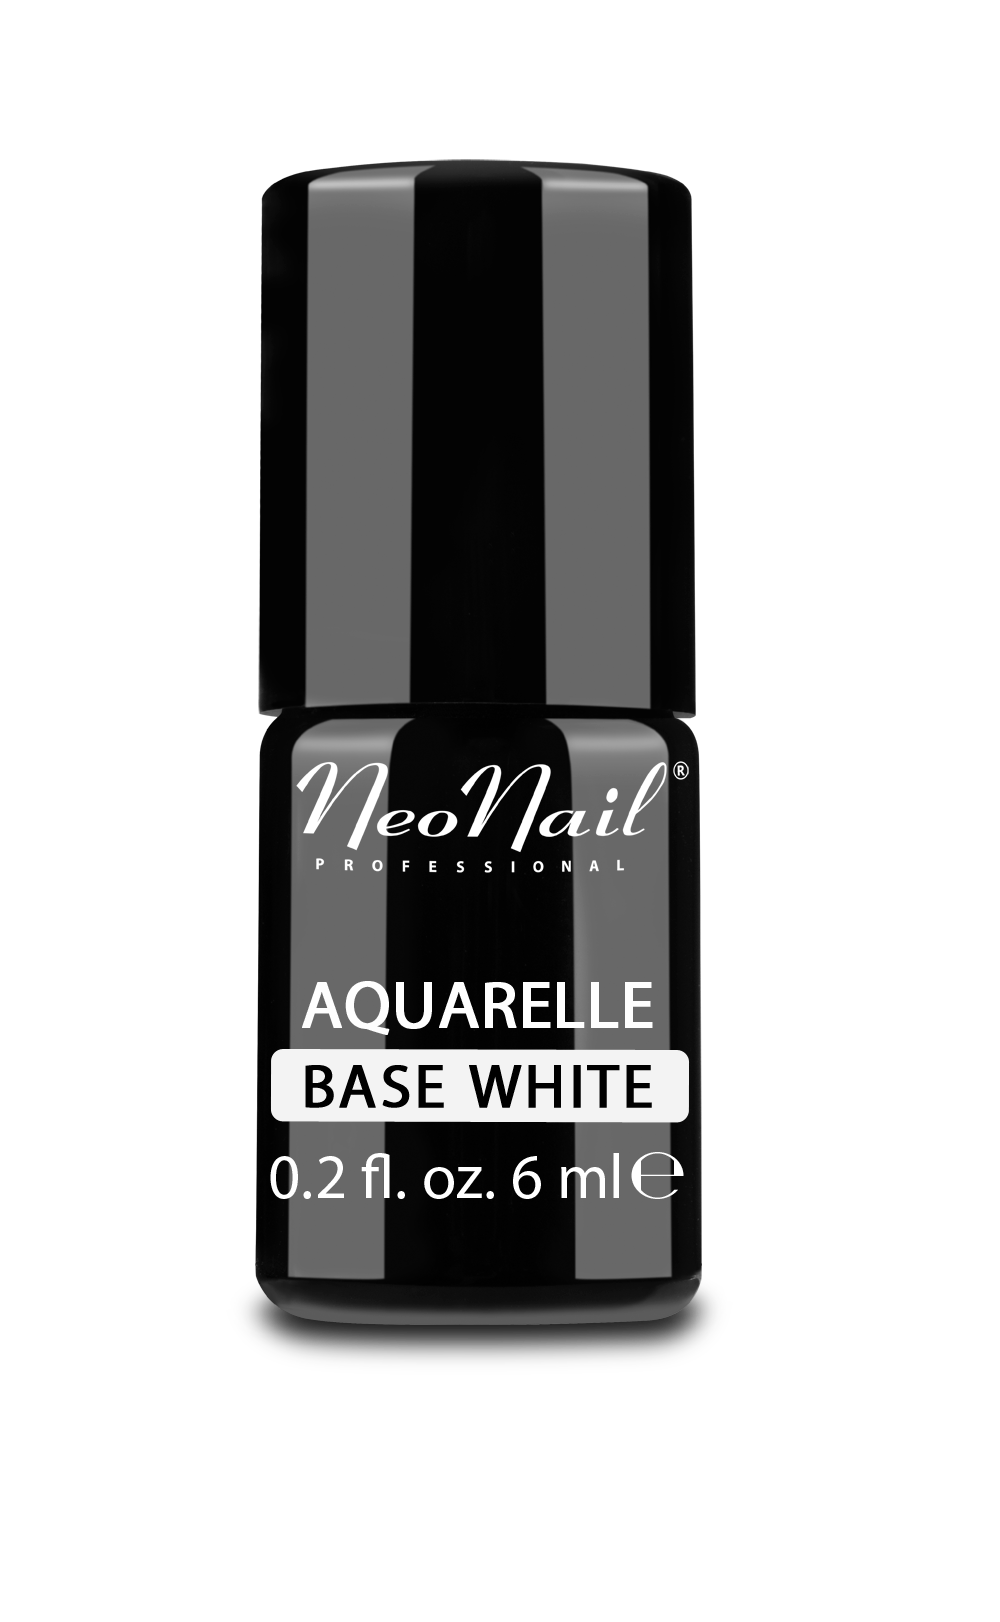 Gelio lako bazė Aquarelle Base White 6 ml